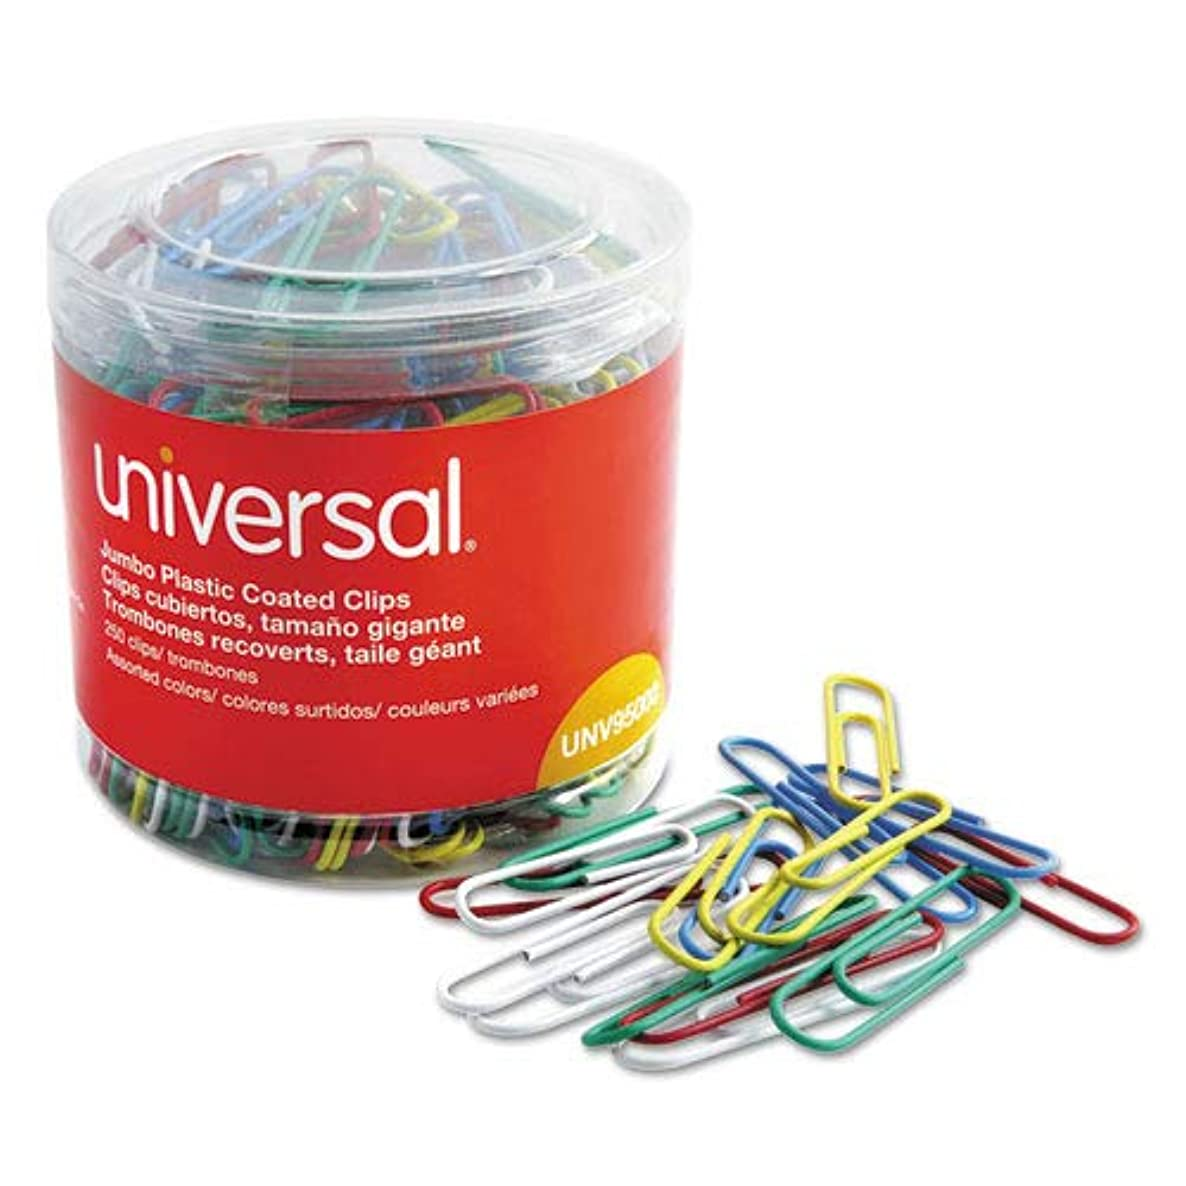 Universal 95000 Plastic-Coated Wire Paper Clips, Jumbo, Assorted Colors, 250/Pack